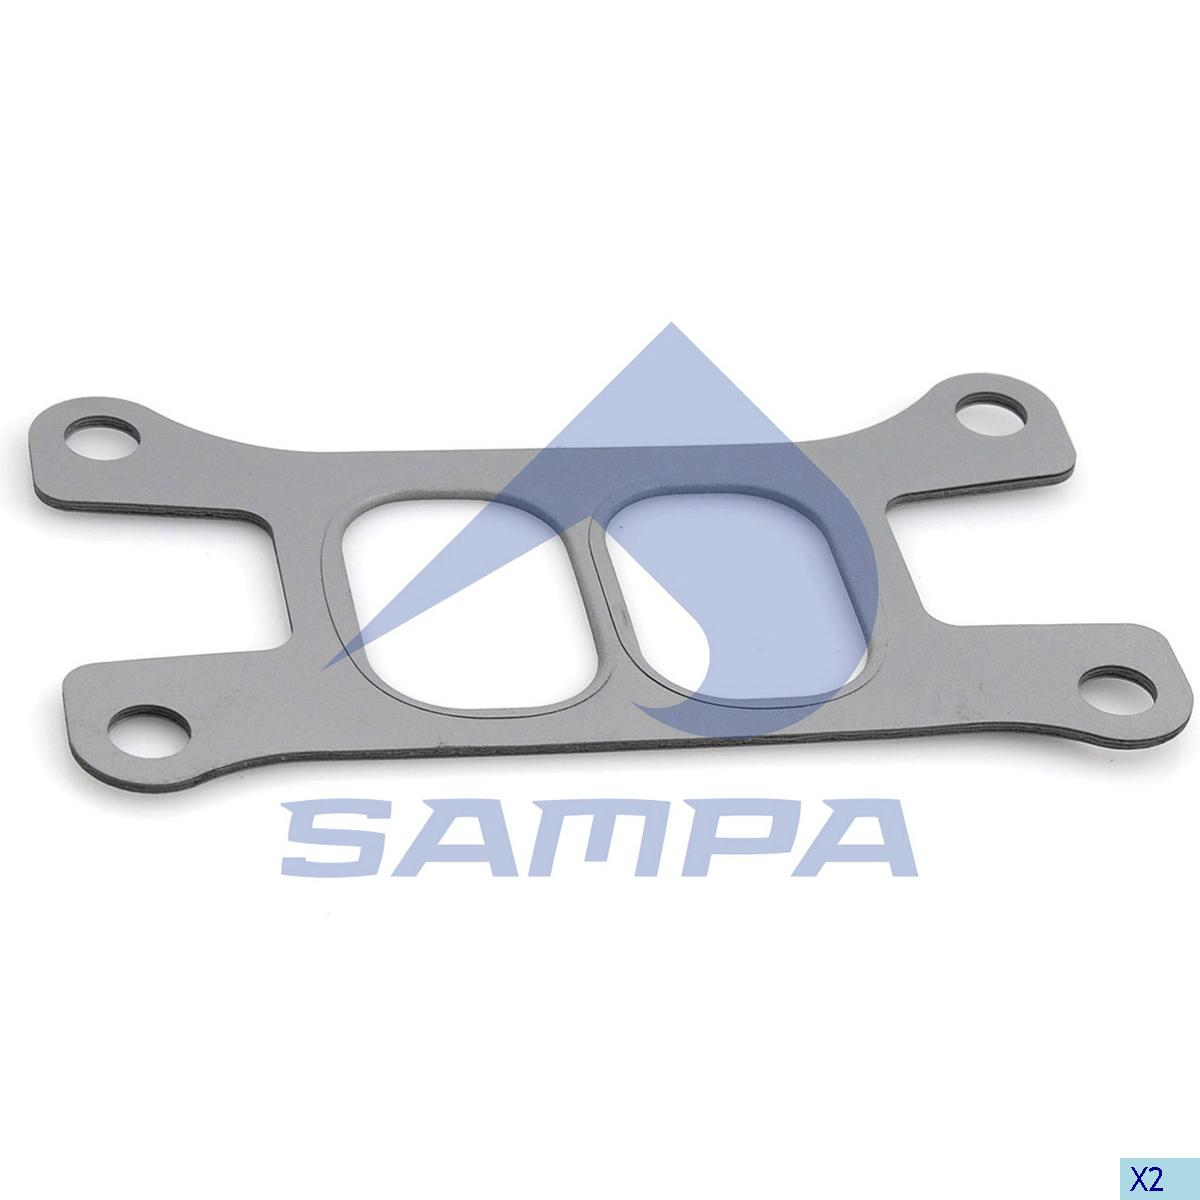 Gasket, Exhaust Manifold, Iveco, Engine